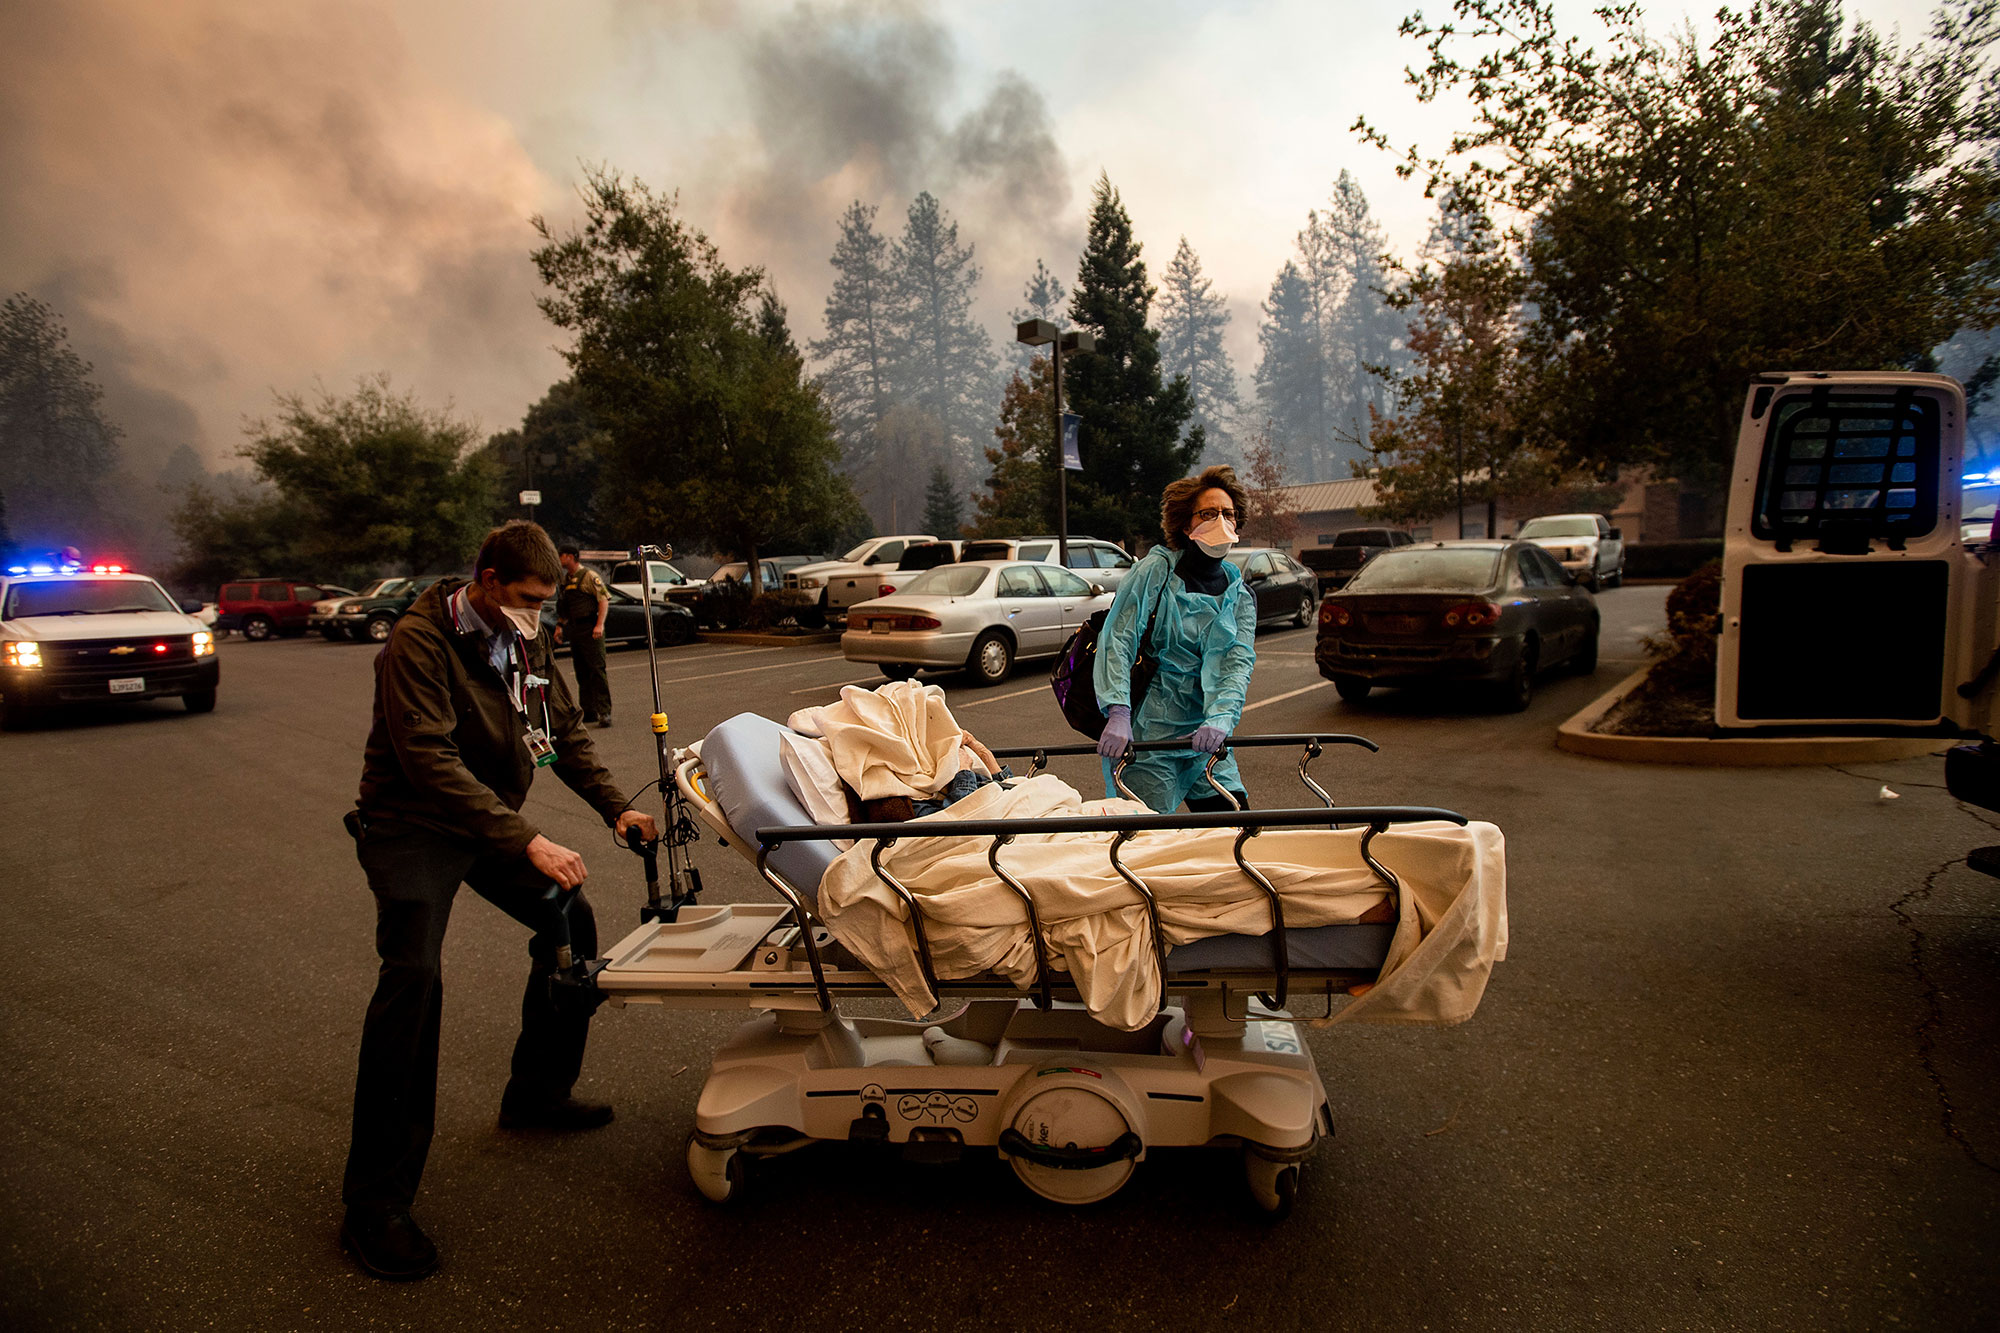 <div class='meta'><div class='origin-logo' data-origin='none'></div><span class='caption-text' data-credit='Noah Berger/AP Photo'>Medical personnel evacuate patients as the Feather River Hospital burns while the Camp Fire rages through Paradise, Calif., on Thursday, Nov. 8, 2018</span></div>